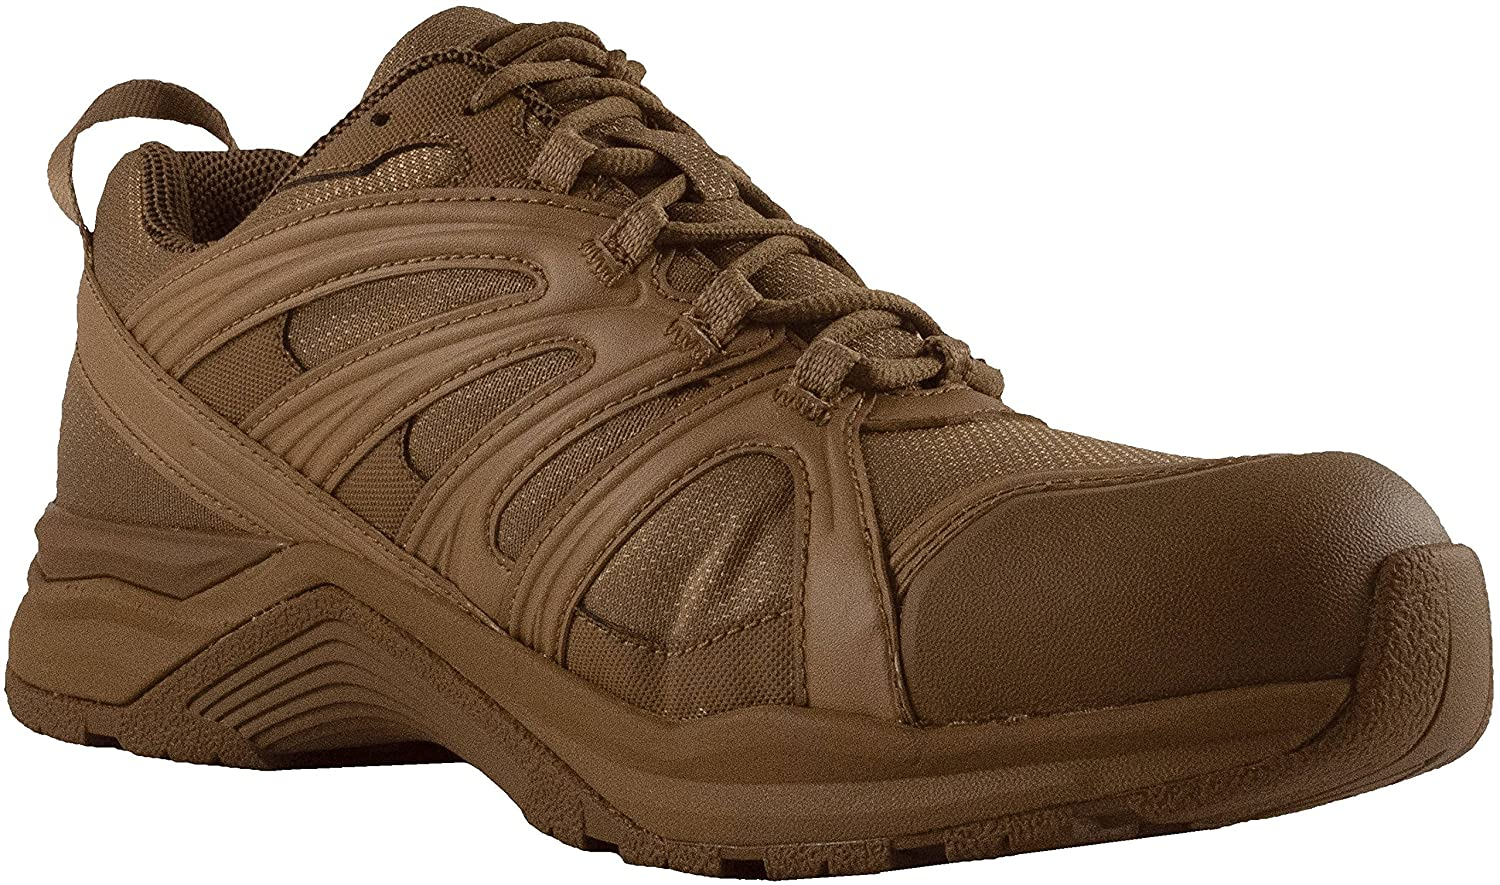 Altama Aboottabad Trail Runner Tactical Low Top Combat Boot B074Q1MYHP 10.5 2E US|Coyote